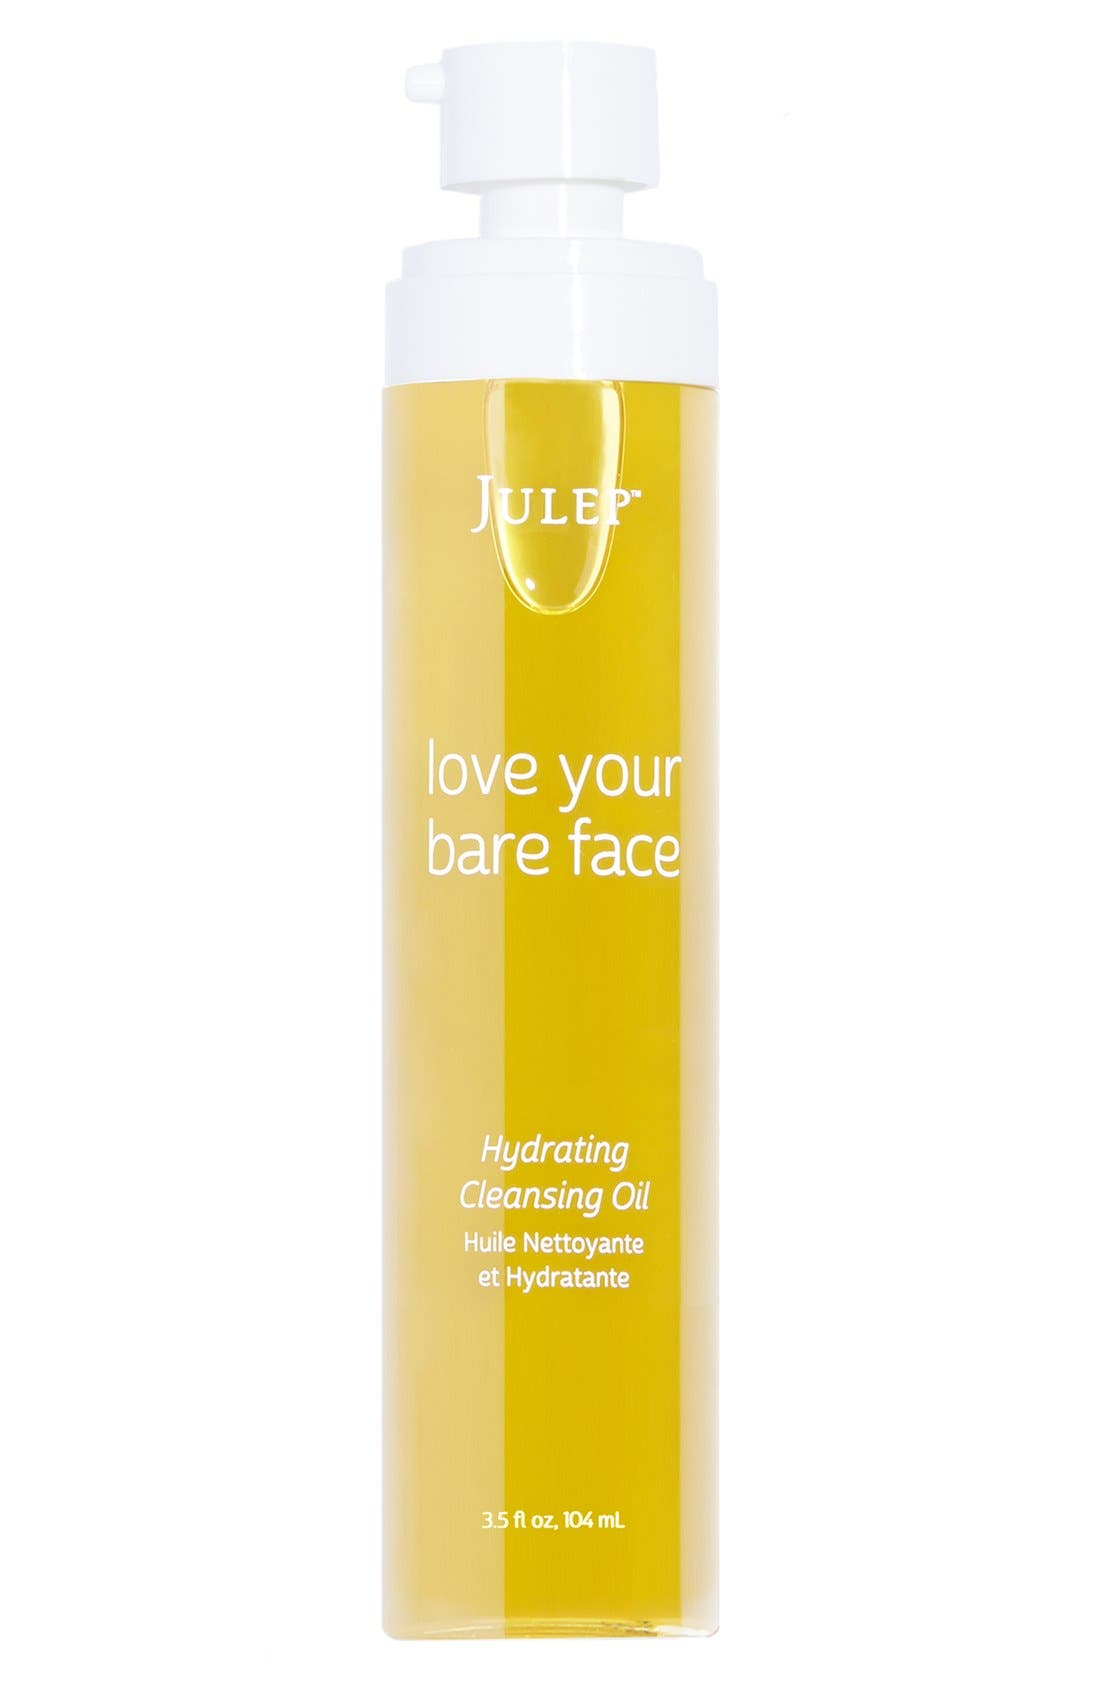 Julep™ love your bare face Hydrating Cleansing Oil